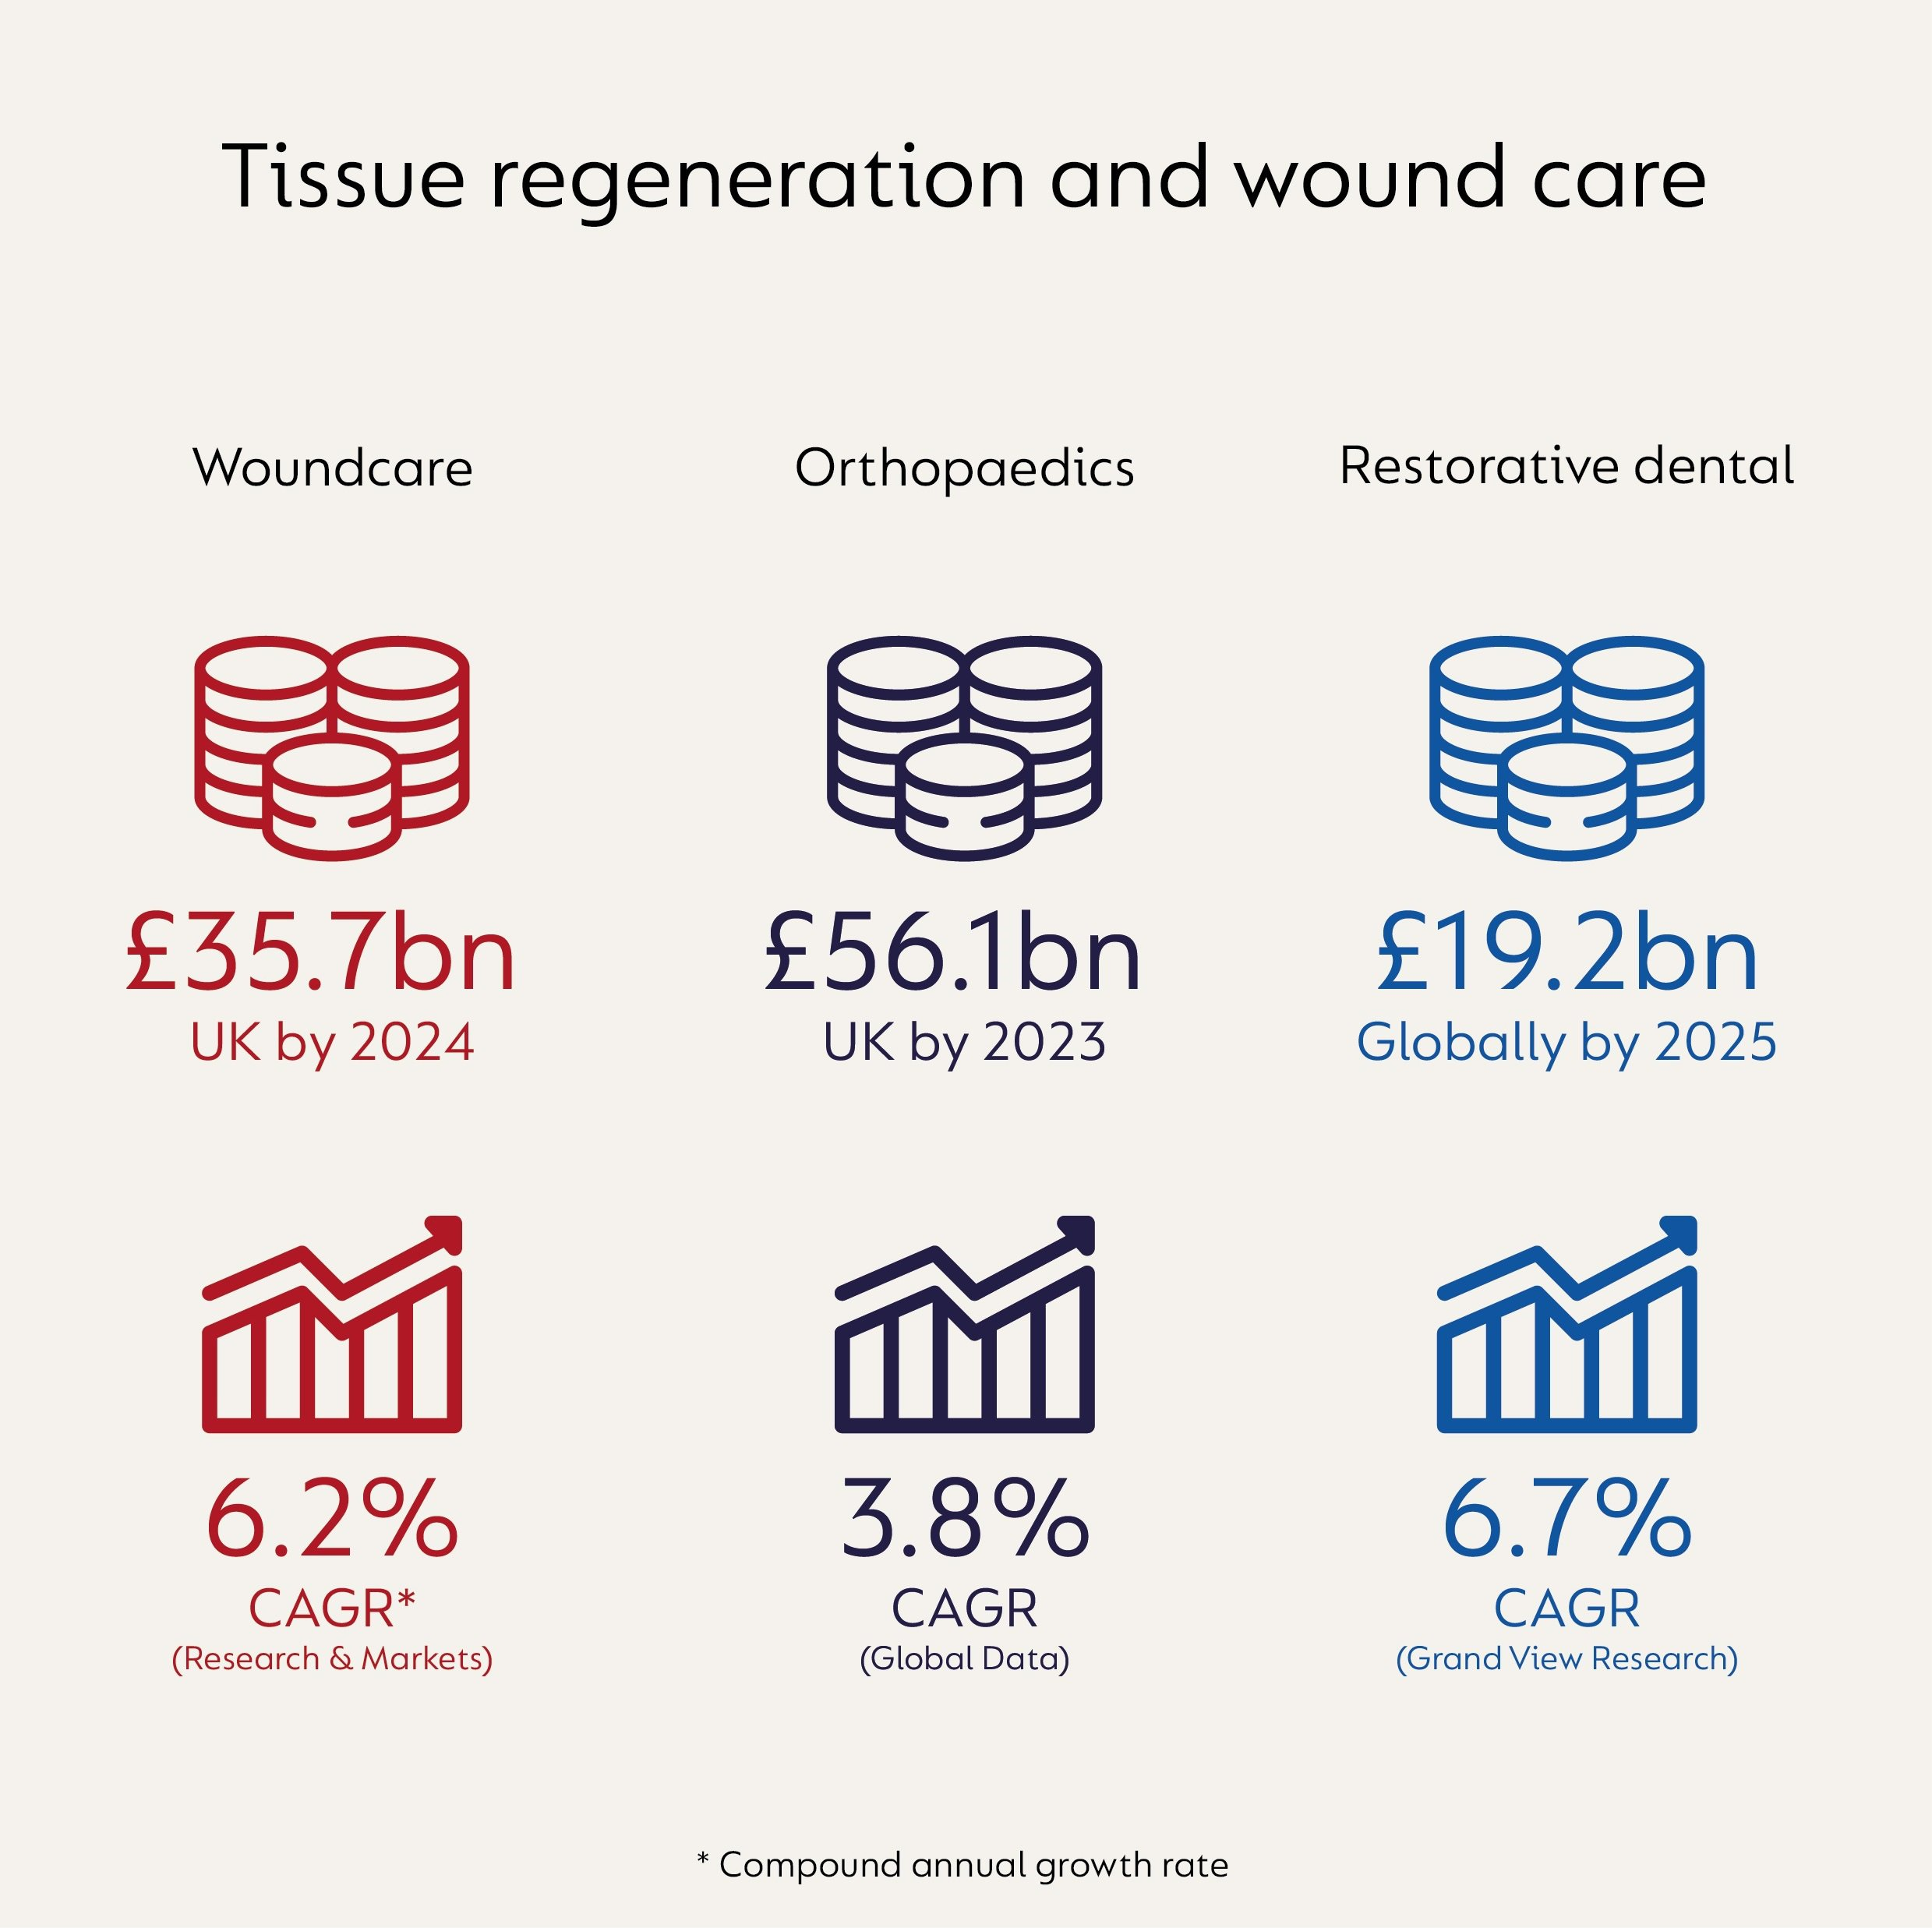 Infographic showing information about projected values and compound annual growth rates (CAGR) of 3 areas of tissue regeneration and wound care. Restorative dental, worth £19.2 billion globally by 2024 and a CAGR of 6.7%. Orthopaedics, worth £56.1 billion in the UK by 2023 and a CAGR of 3.8%. Woundcare, worth £35.7 billion in the UK by 2024 and a CAGR of 6.2%.